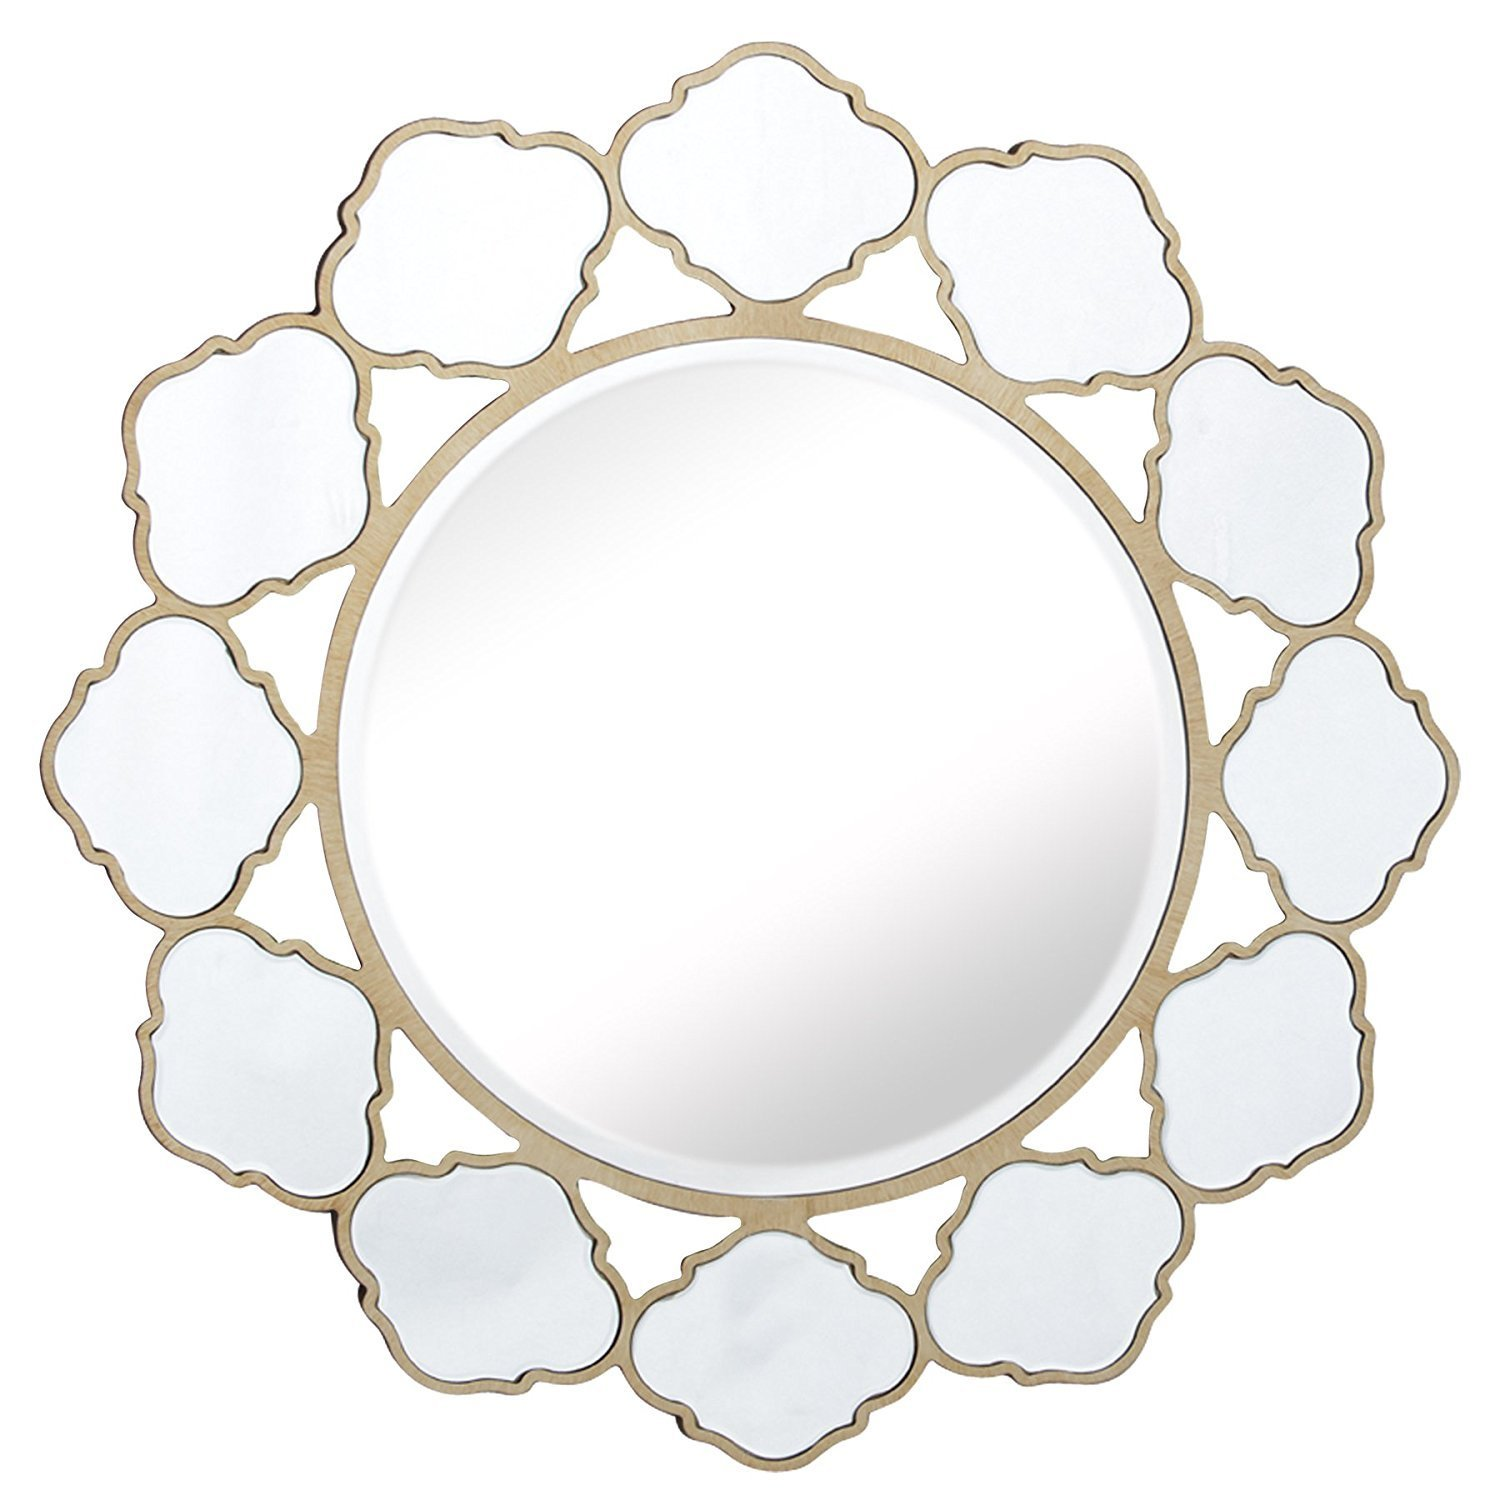 Get Quotations Mirror Trend Large Vanity Flower Round Shaped Exquisite Handmade Wall Mount Mirrors For Home Decor